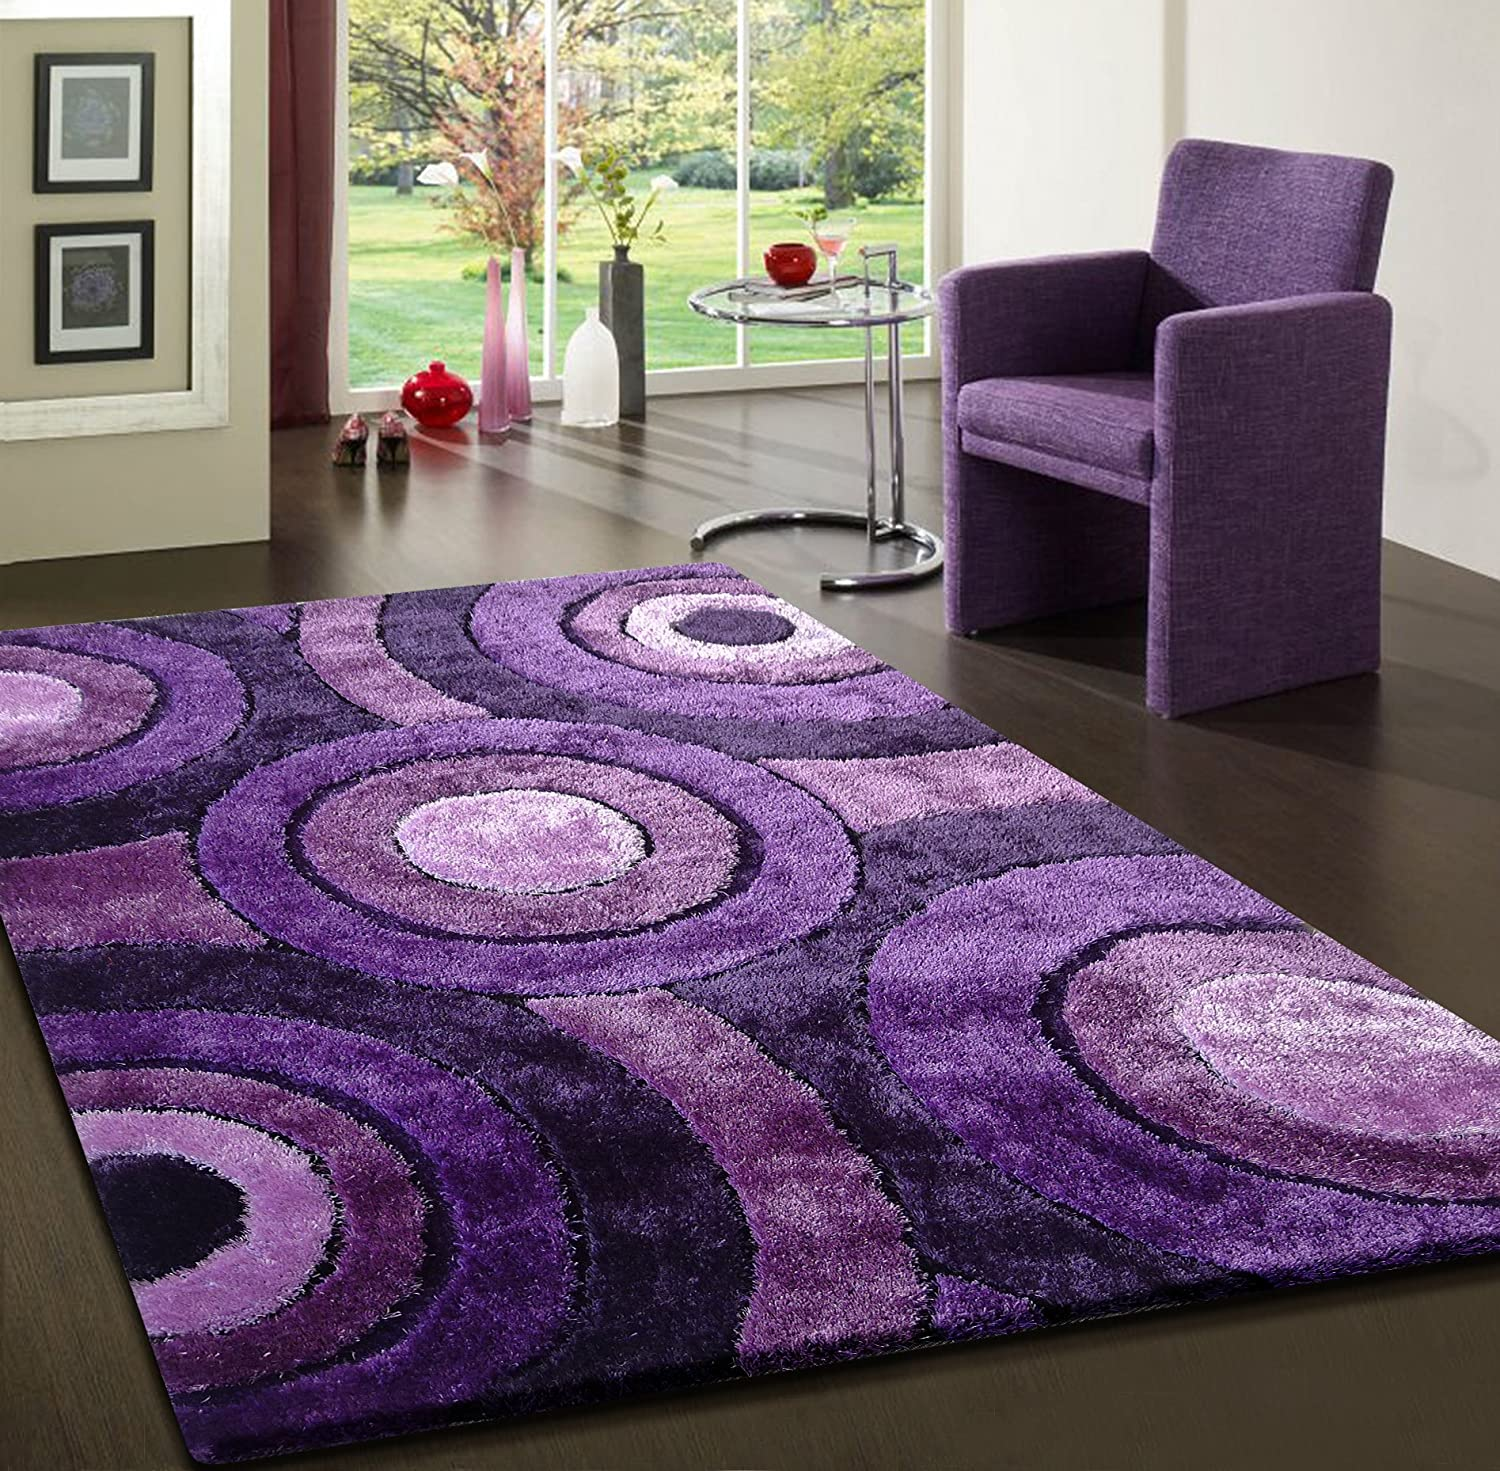 area rugs for sale furniture shop. Black Bedroom Furniture Sets. Home Design Ideas